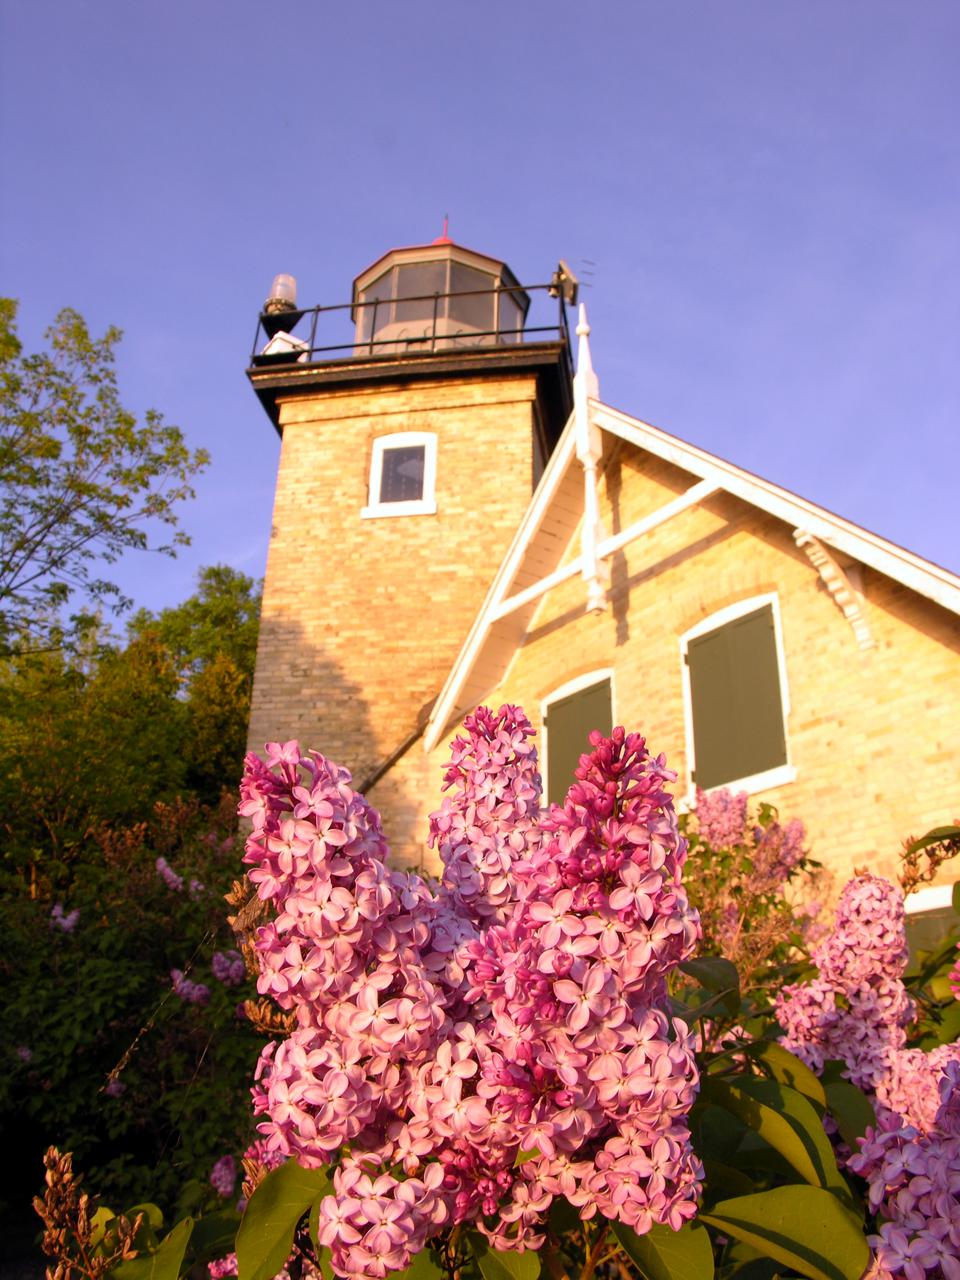 The Eagle Bluff Lighthouse